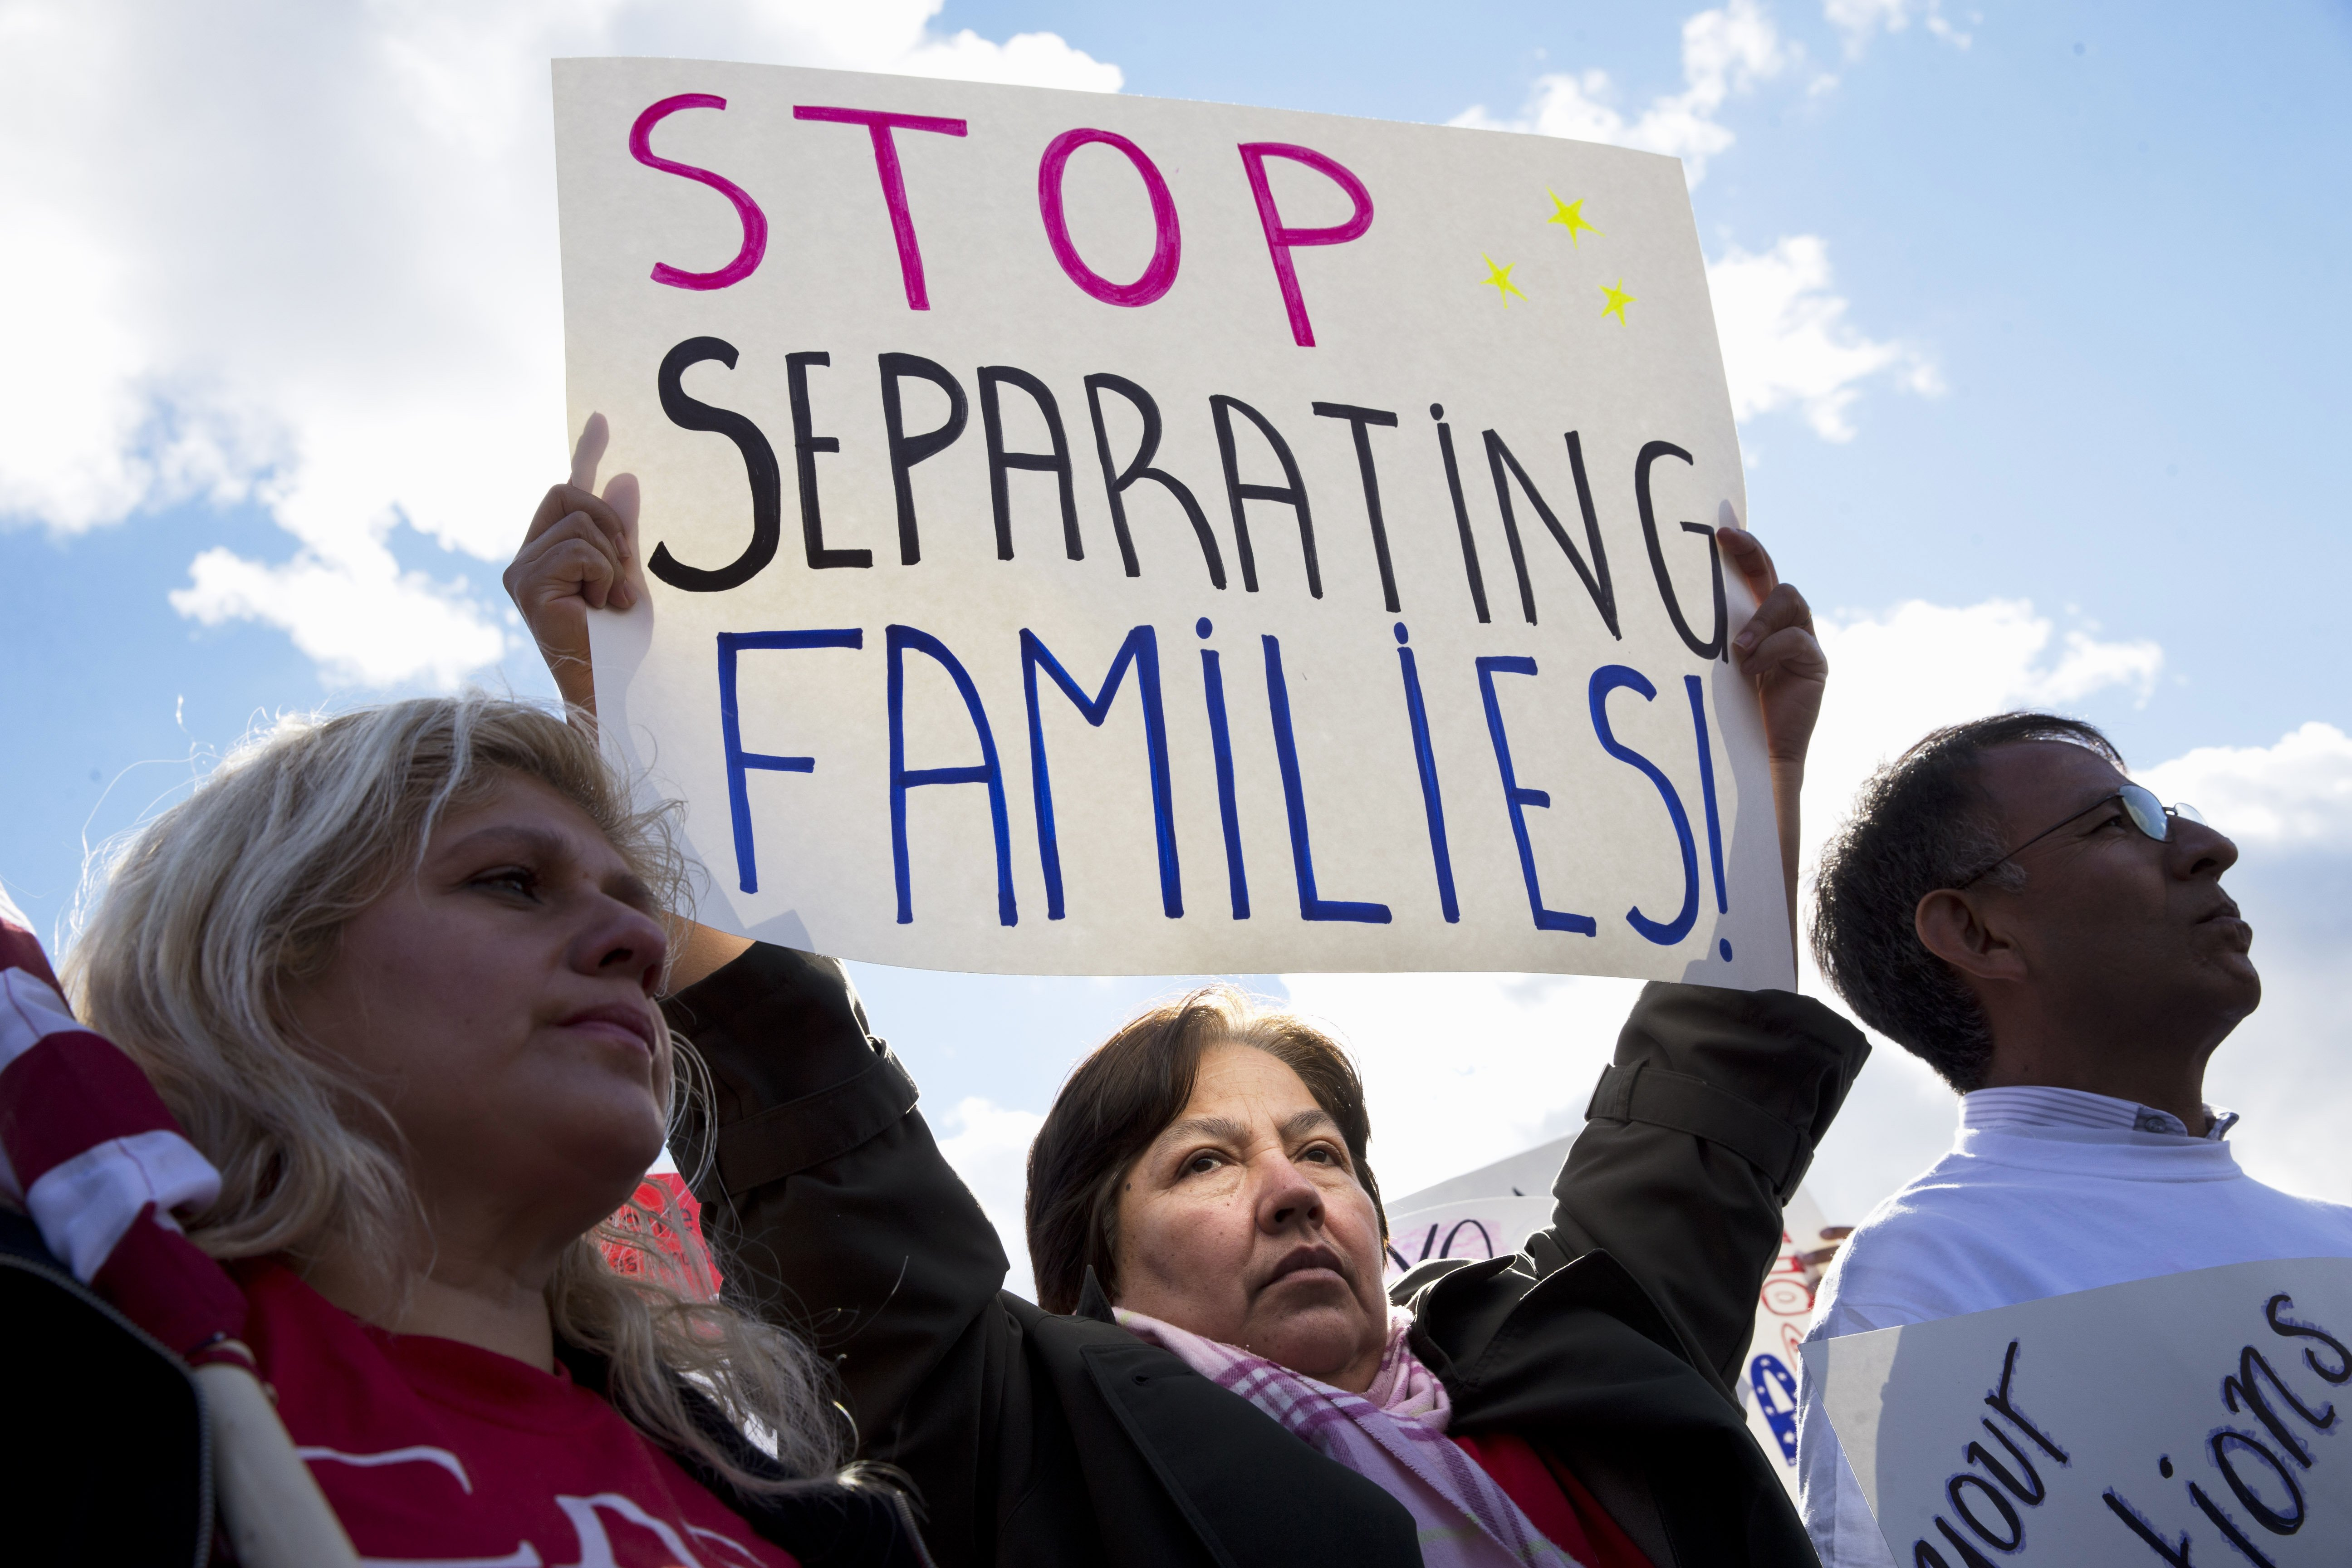 Sara Ramirez, of Gaithersburg, Md., rallies for comprehensive immigration reform outside the White House in Washington, D.C., on Nov. 7, 2014